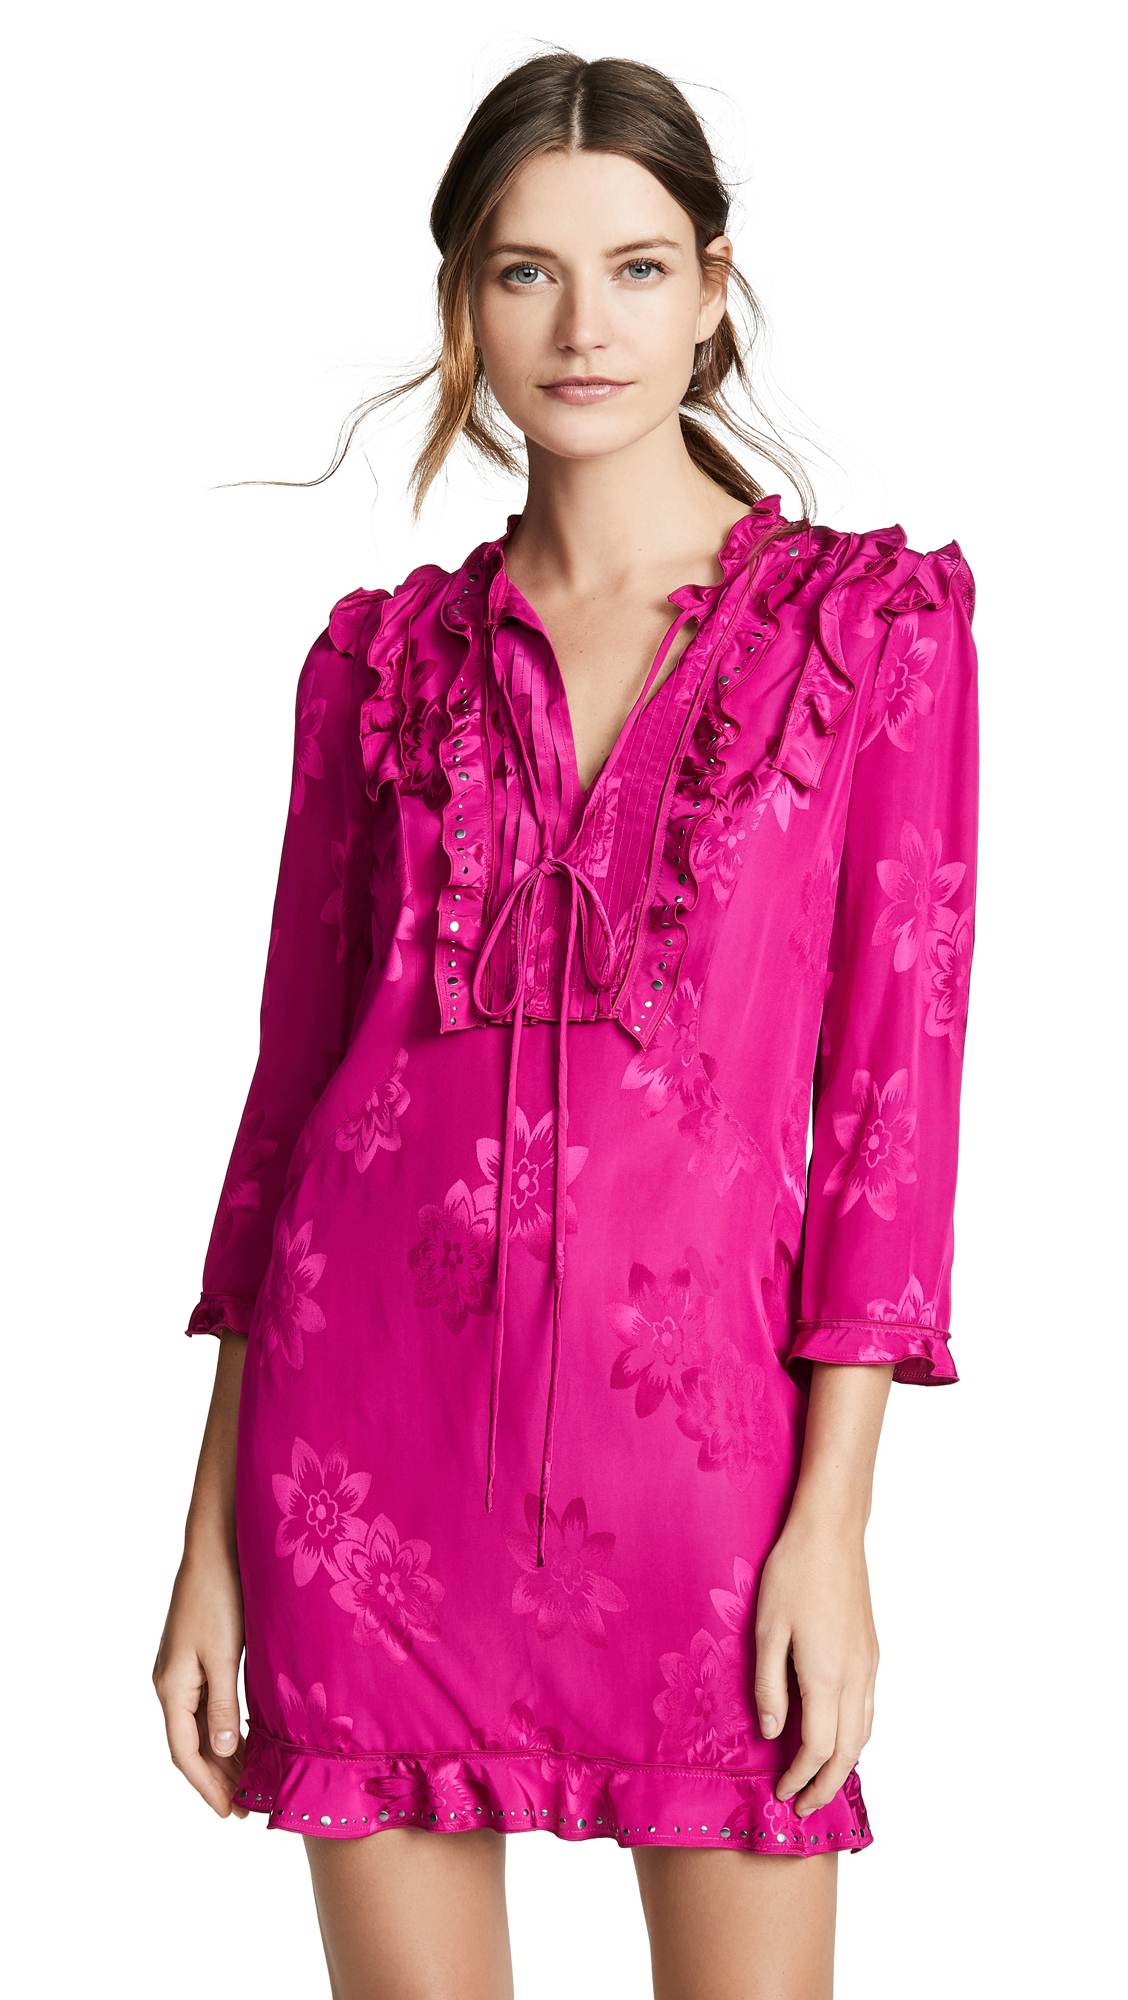 Embellished Floral Jacquard Ruffle Dress in Fuschia from COACH